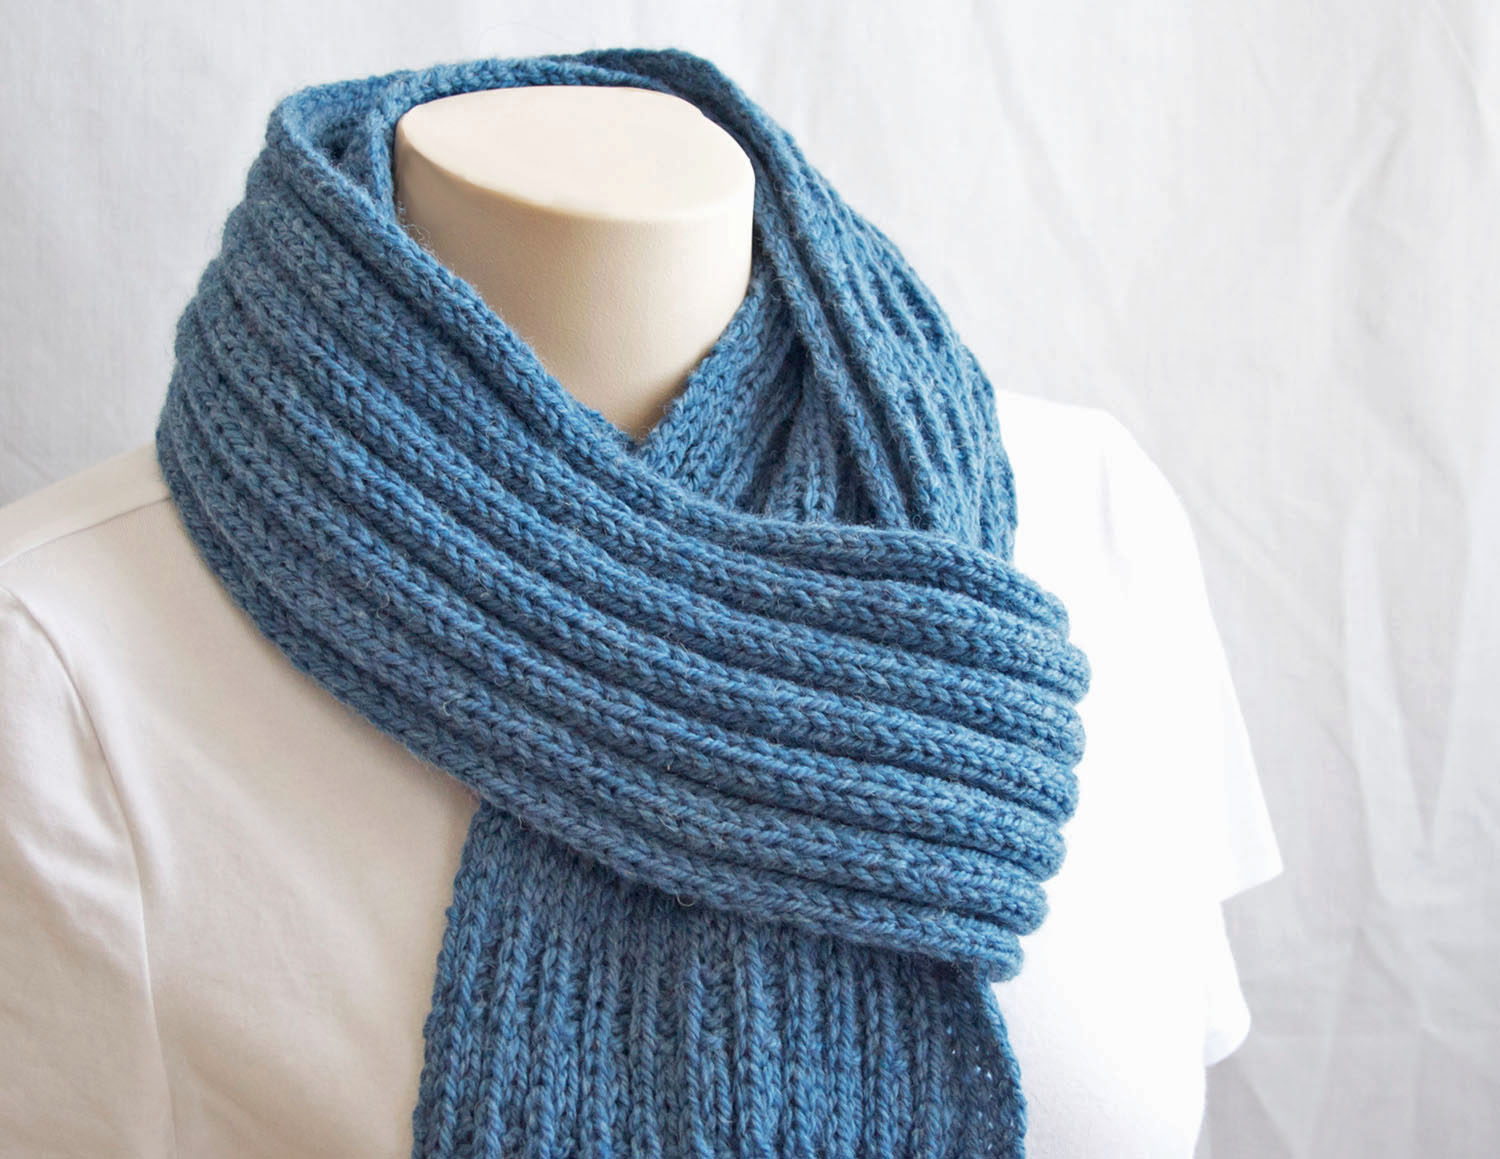 Good Knitting Stitches For Scarves : Une maille a la fois: Knitting Pattern Scarf ... Patron pour un foulard